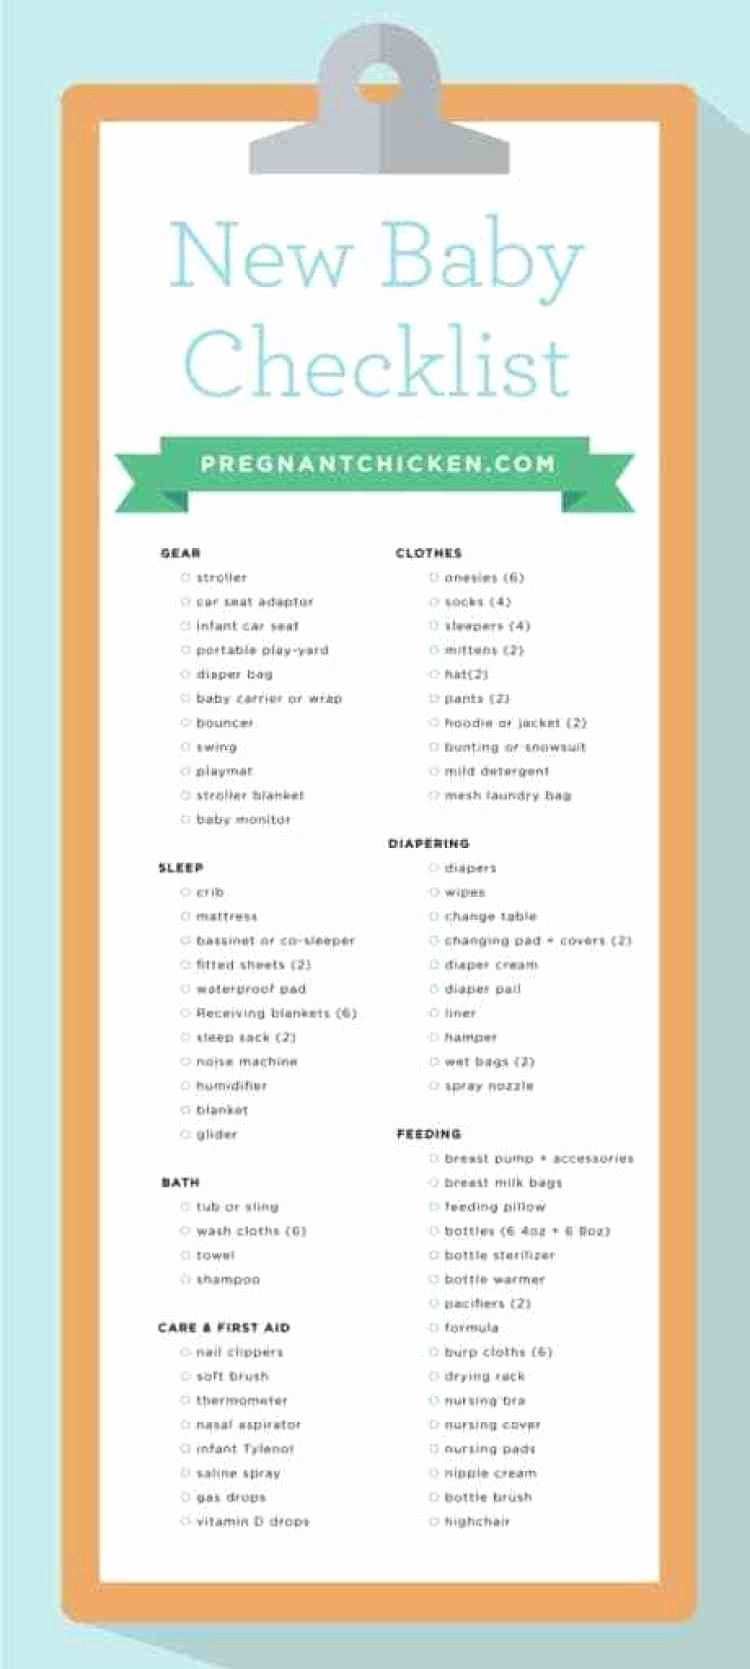 New Born Baby Check List Beautiful New Baby Checklist What to Get when Expecting